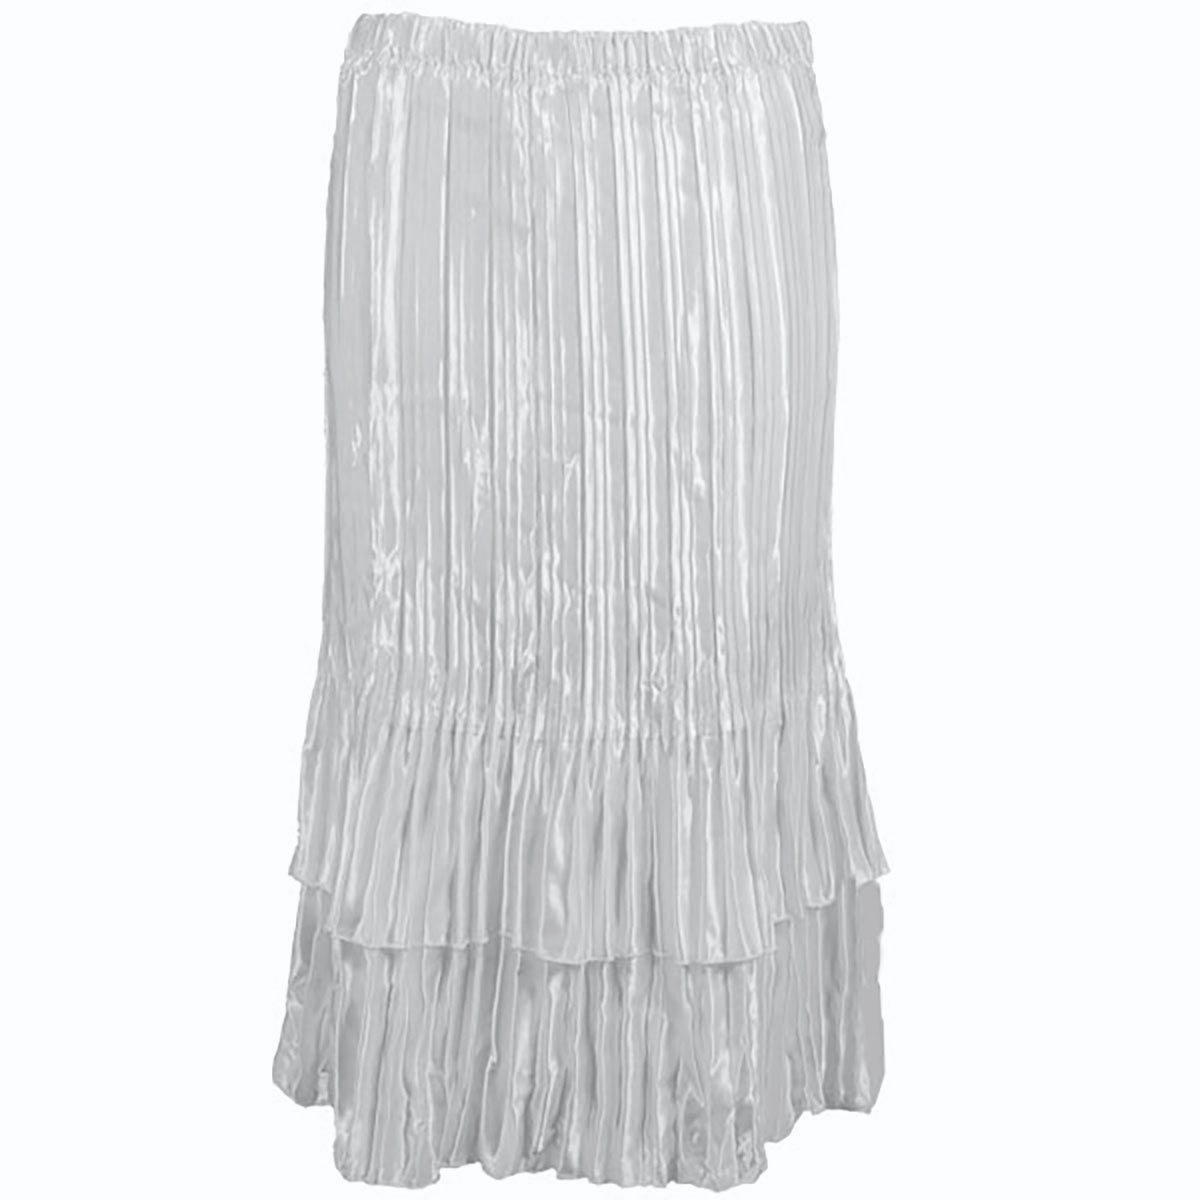 Wholesale Skirts - Satin Mini Pleat Tiered* Solid White - One Size (S-XL)